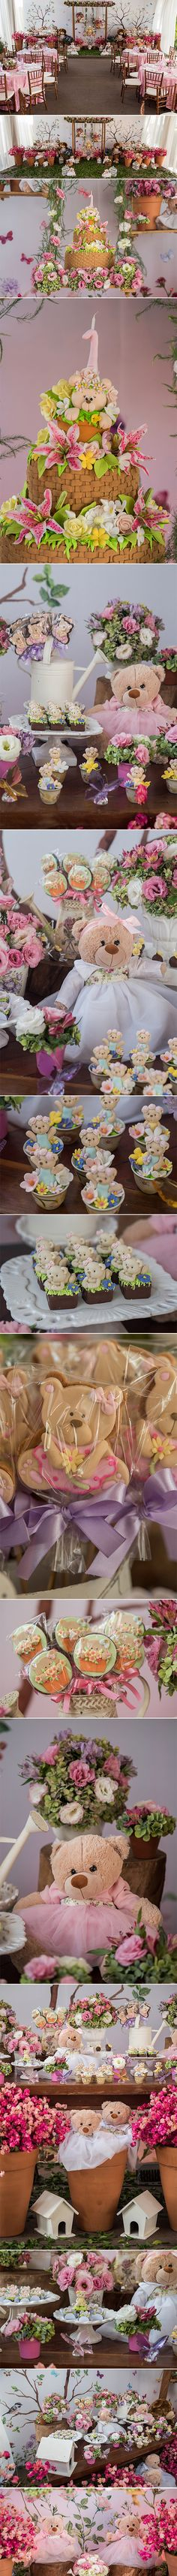 best party images on pinterest in ideas party themed